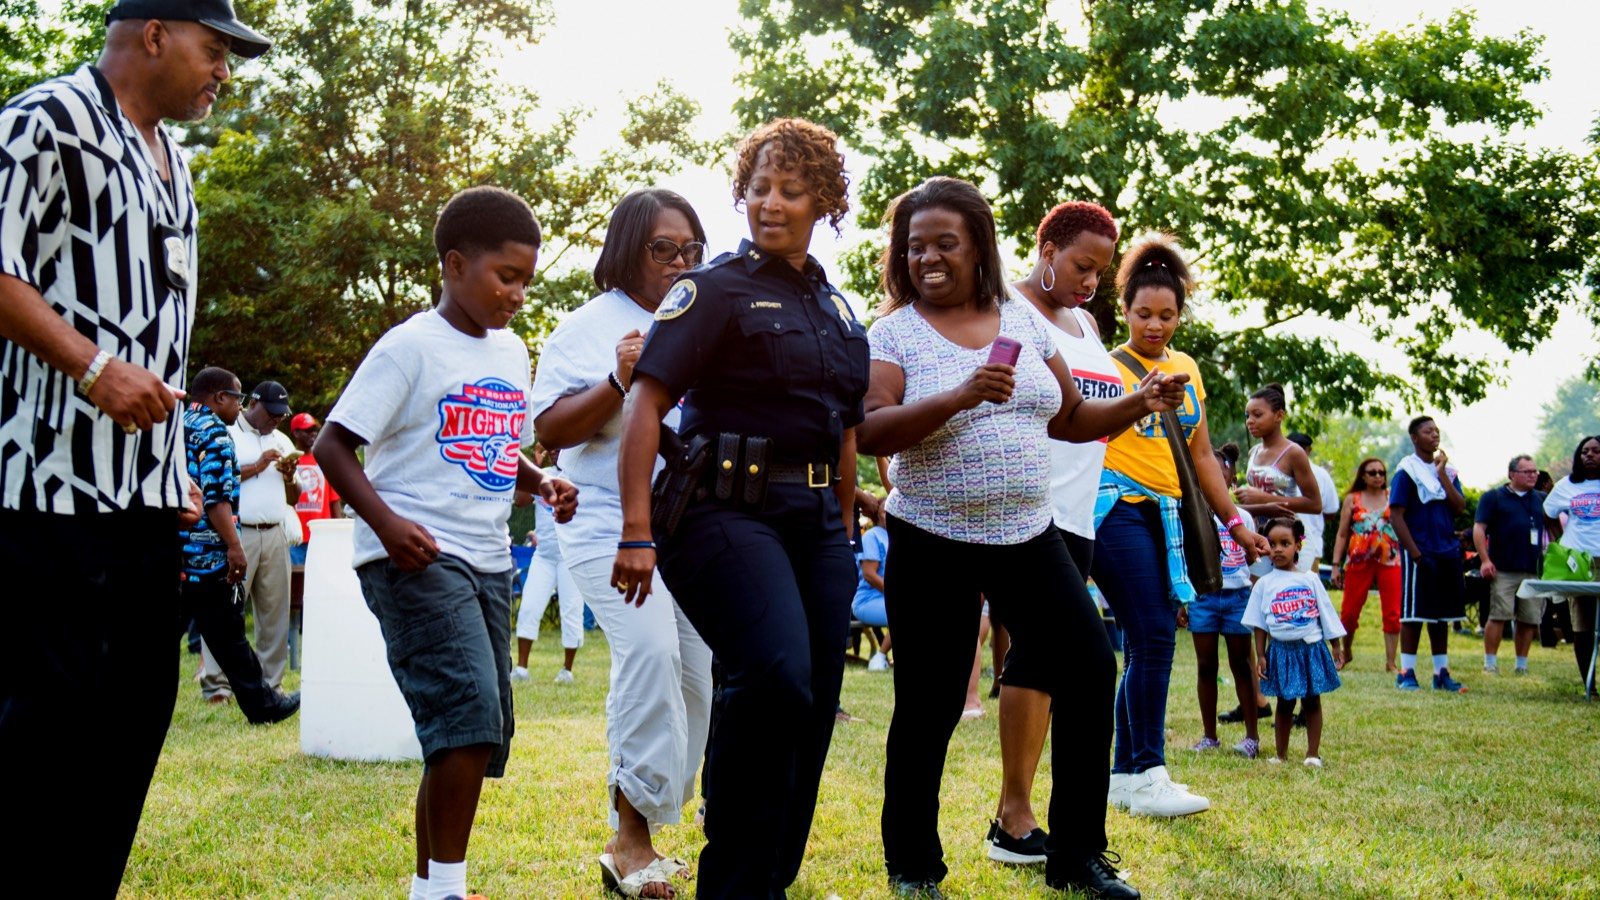 About | National Night Out